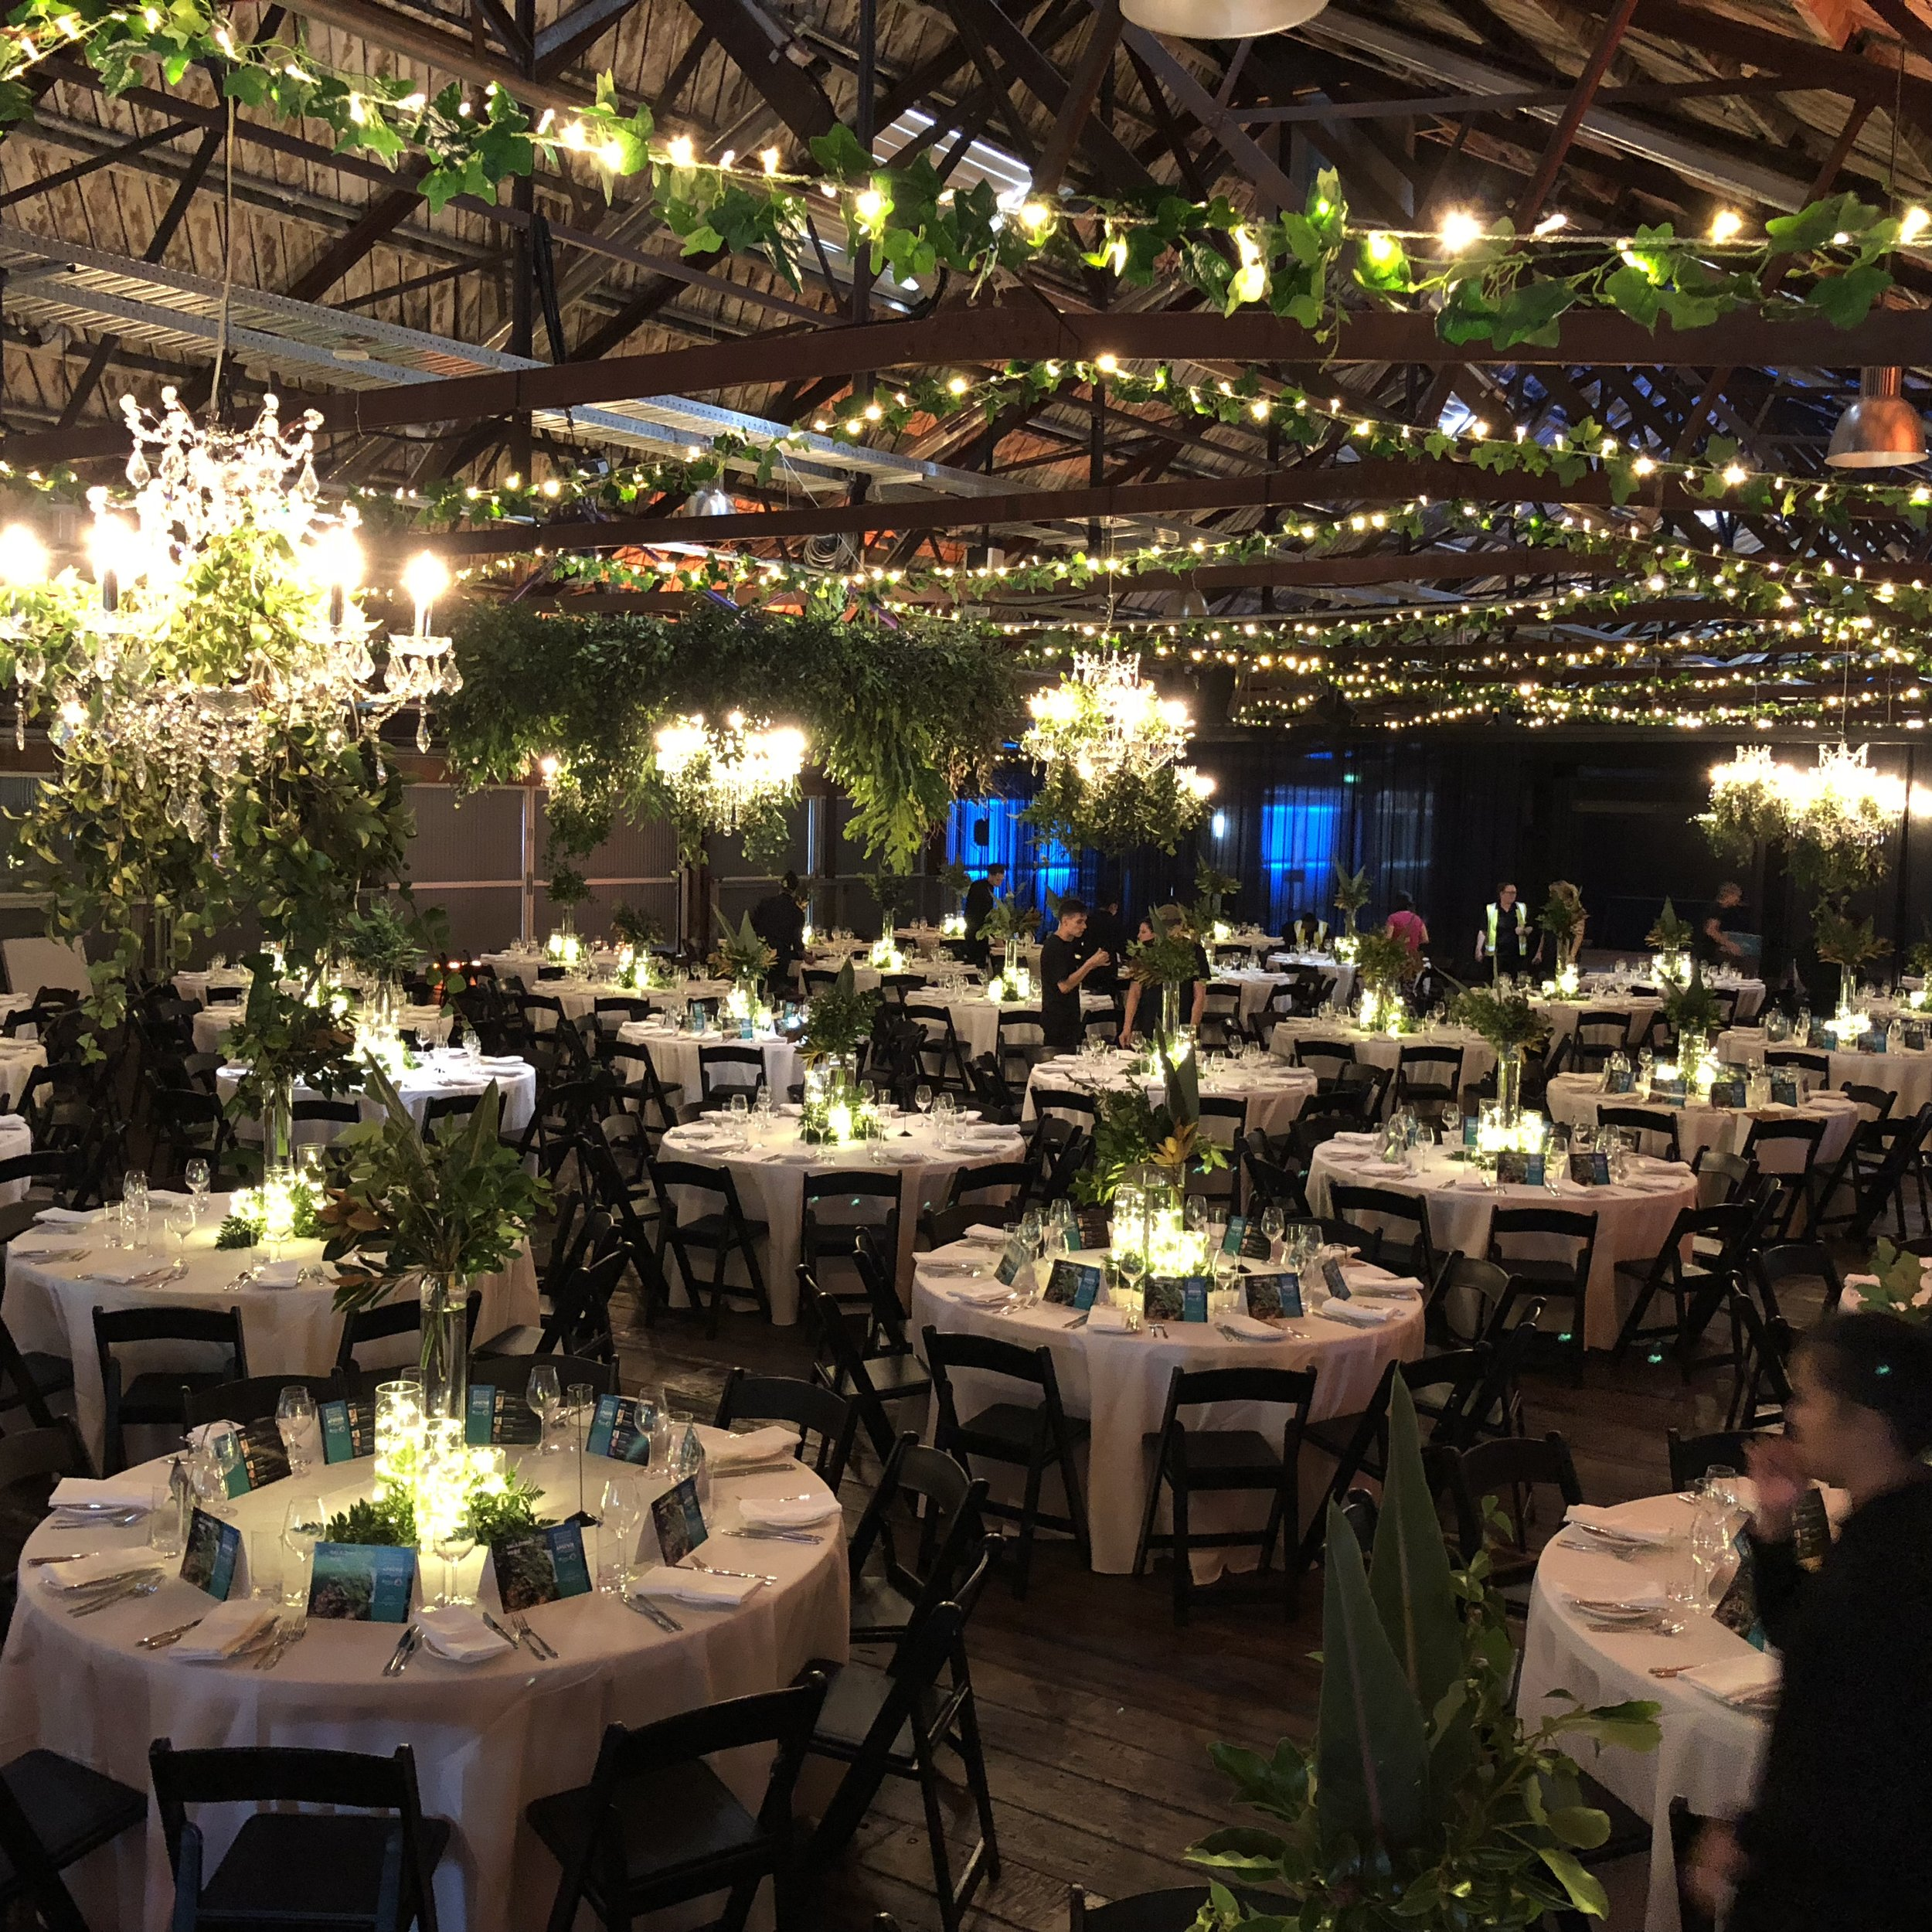 Gala Dinner, Shed 10  Thank you so much for all your work on our dinner at Shed 10 - it looked amazing and the client was so happy! It certainly transformed the Shed into the magical NZ forest vibe we were going for!